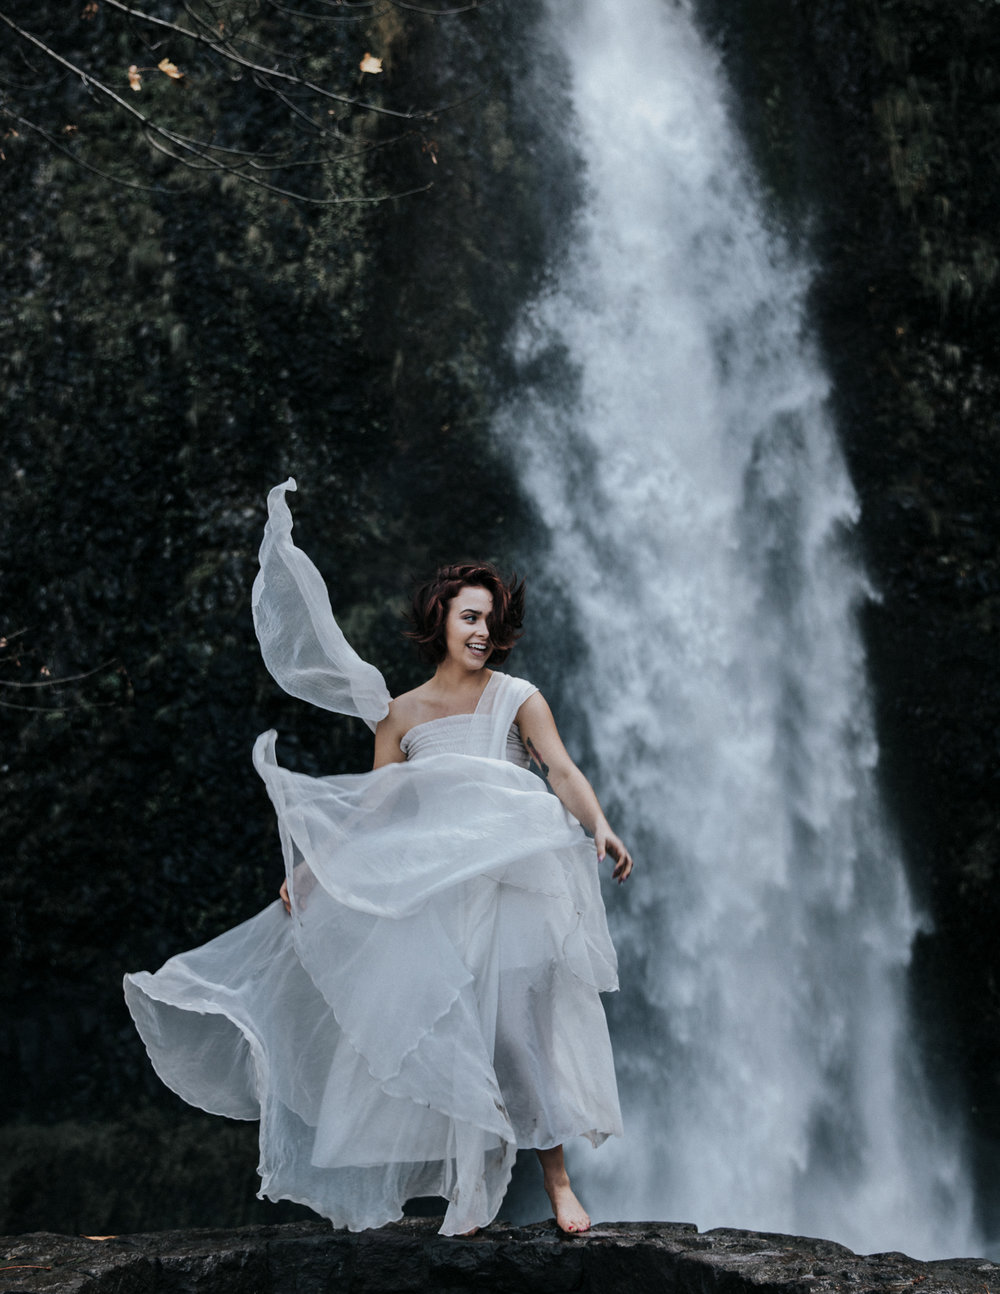 Woman dancing in white dress in front of waterfall, Adventurous Outdoor + Waterfall Couples Session | Croative Photography